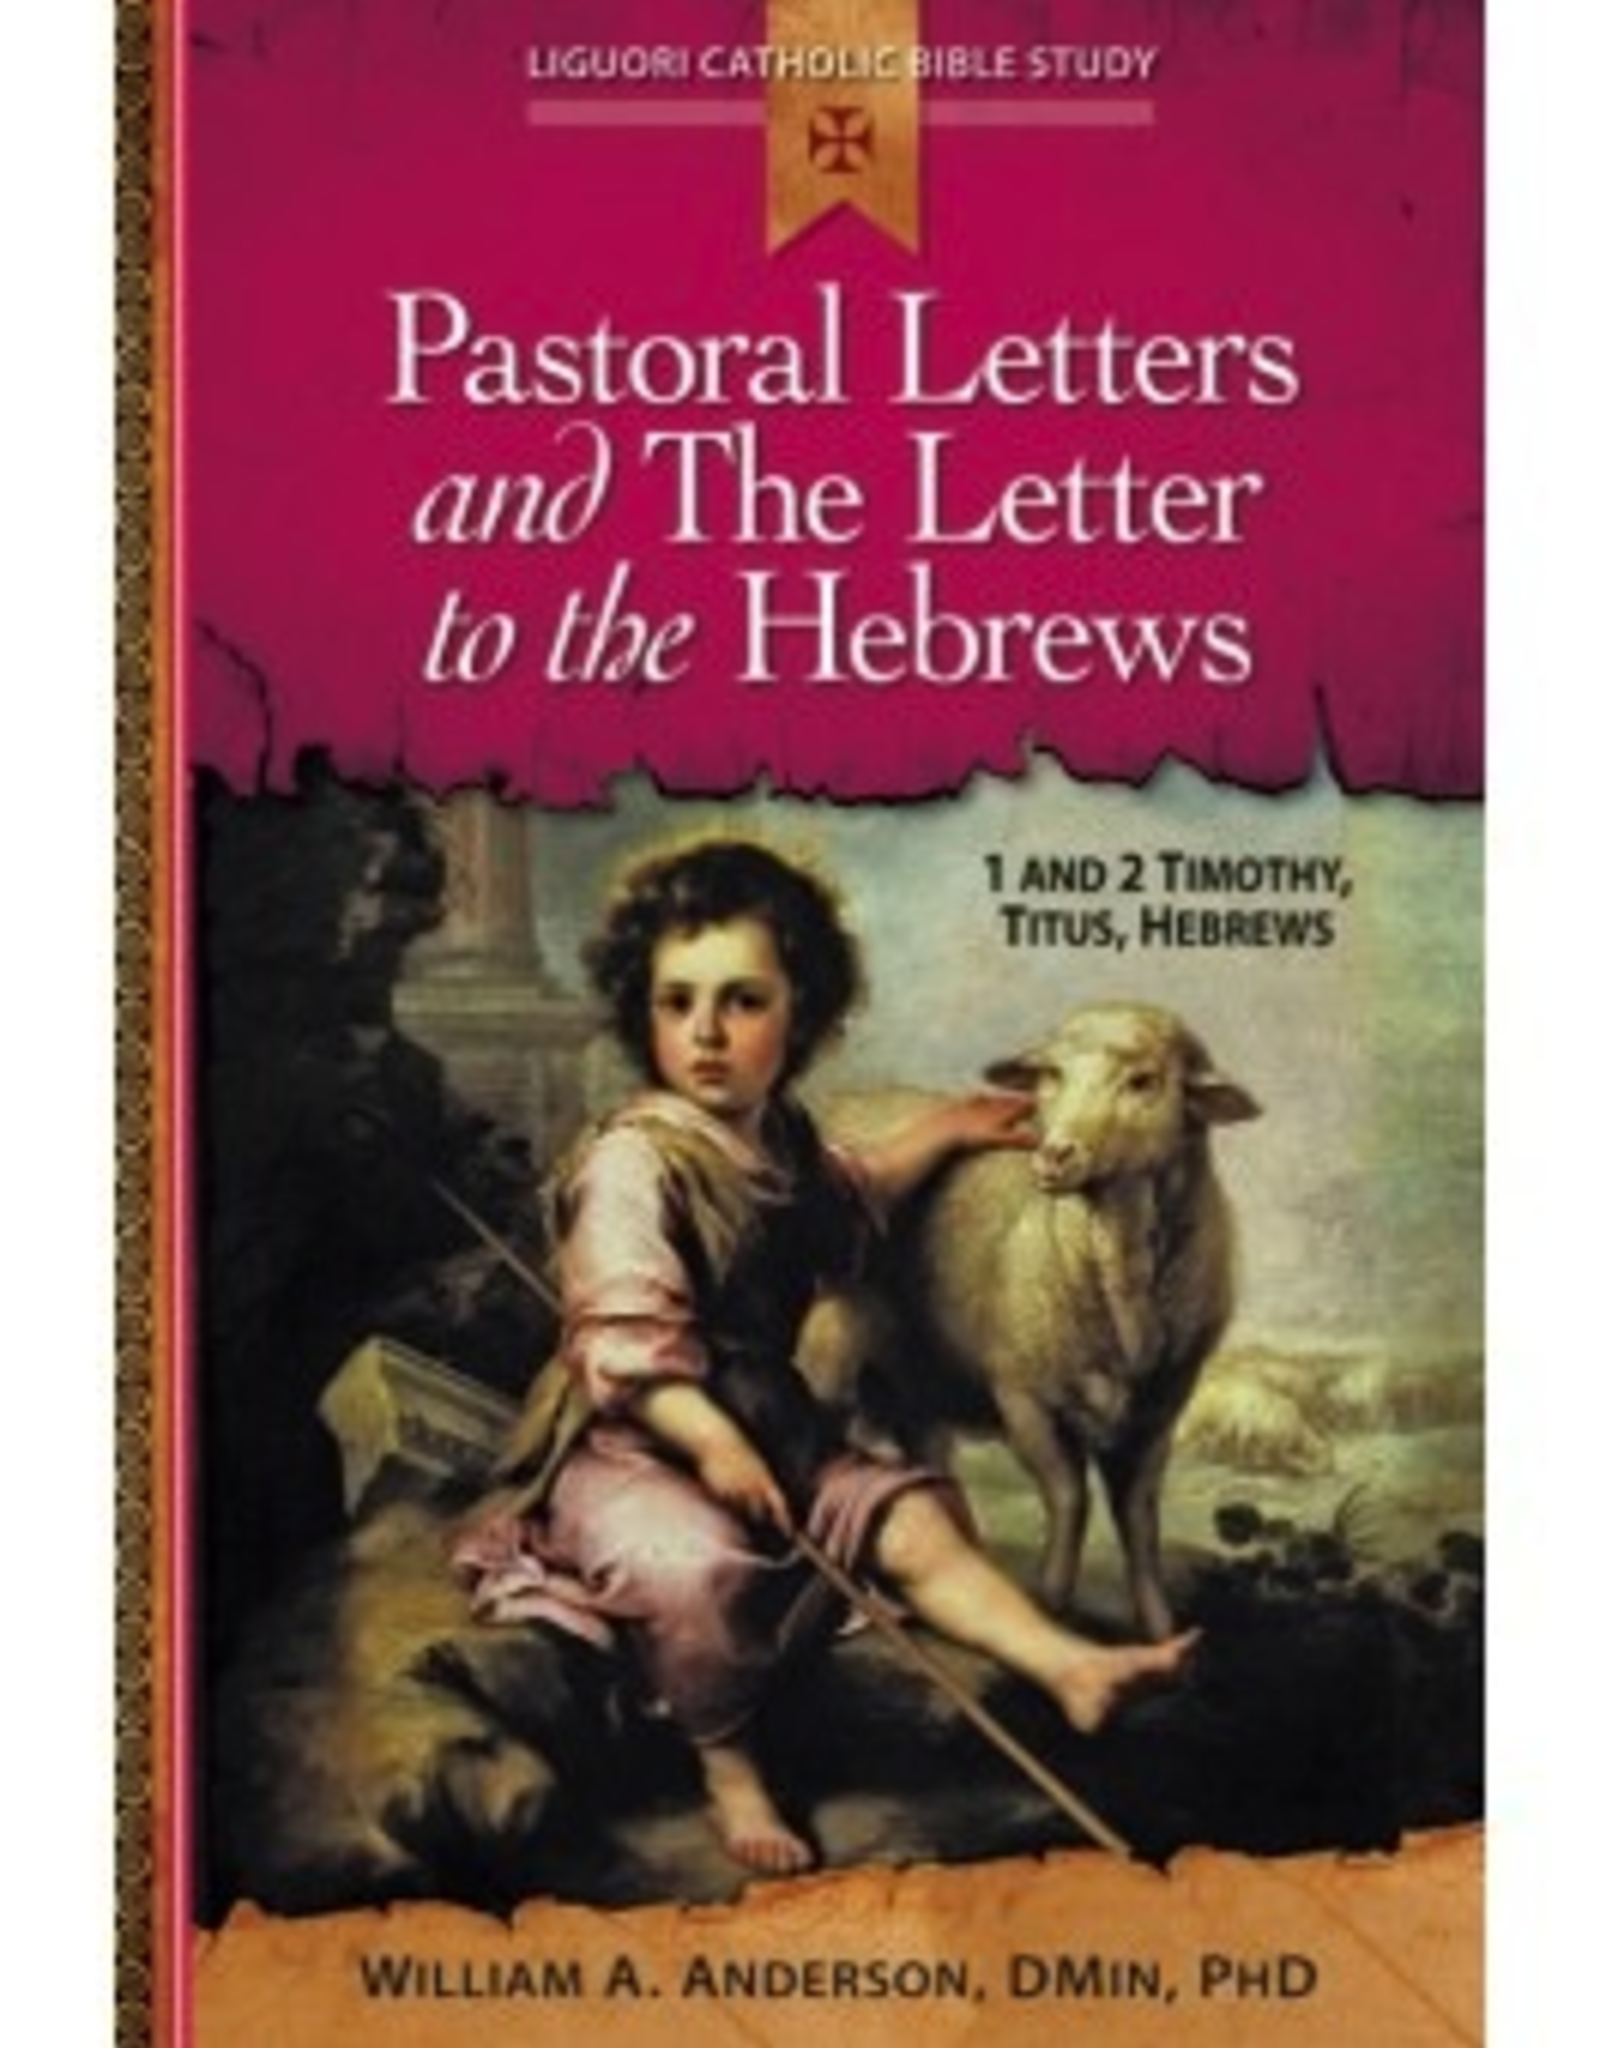 Liguori Pastoral Letters and The Letter to the Hebrews:  1 and 2 Timothy, Titus, Hebrews. by William Anderson (paperback)